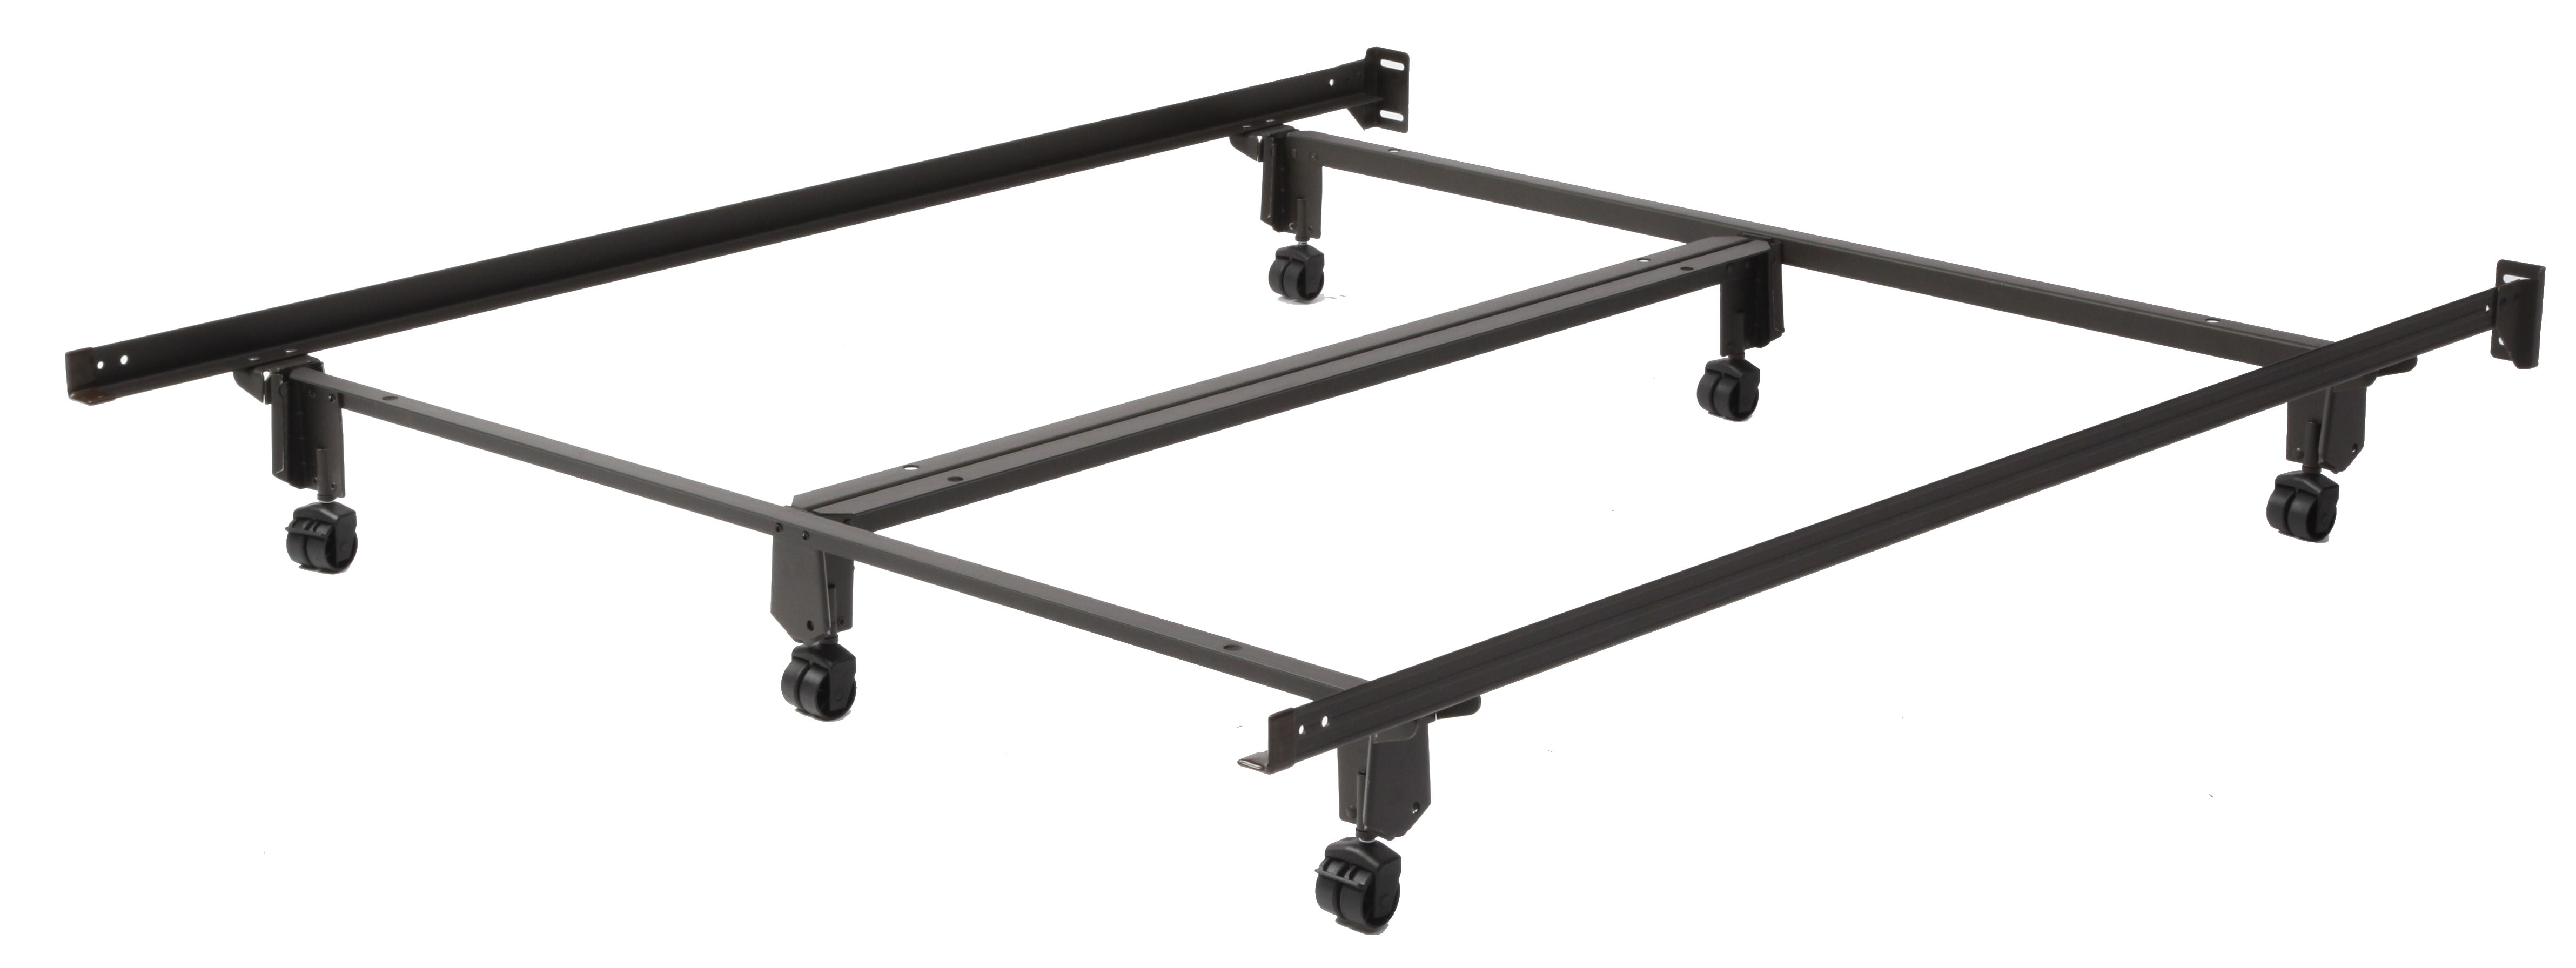 Mantua CraftLock 160R California King Bed Frame with Rollers